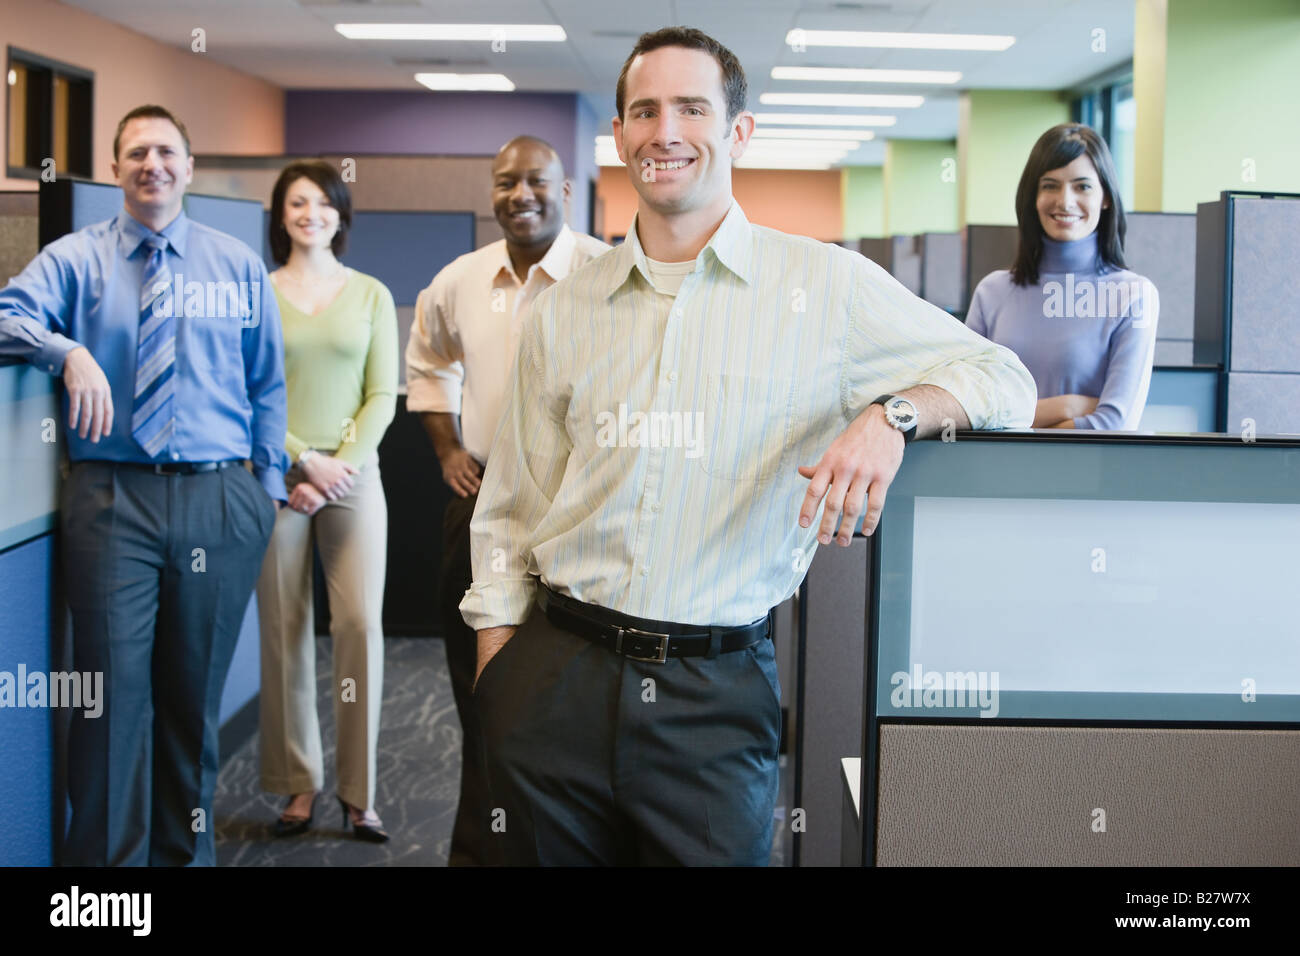 Businessman with multi-ethnic coworkers in background - Stock Image